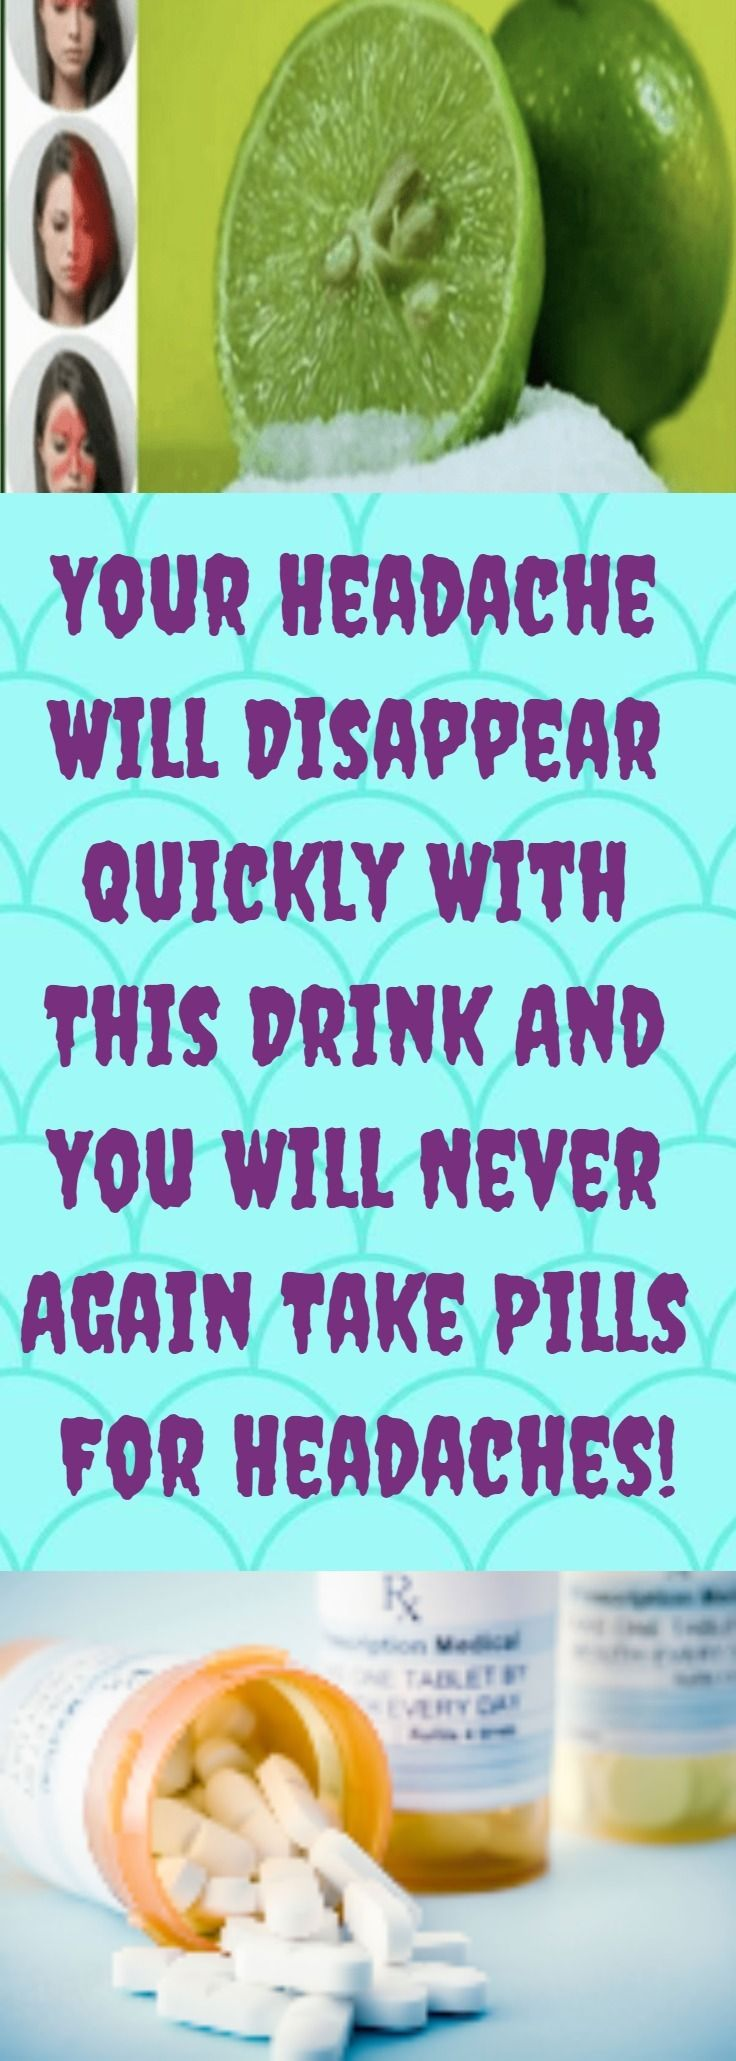 Image result for Your Headache Will Disappear Quickly With This Drink And You Will Never Again Take Pills For Headaches!